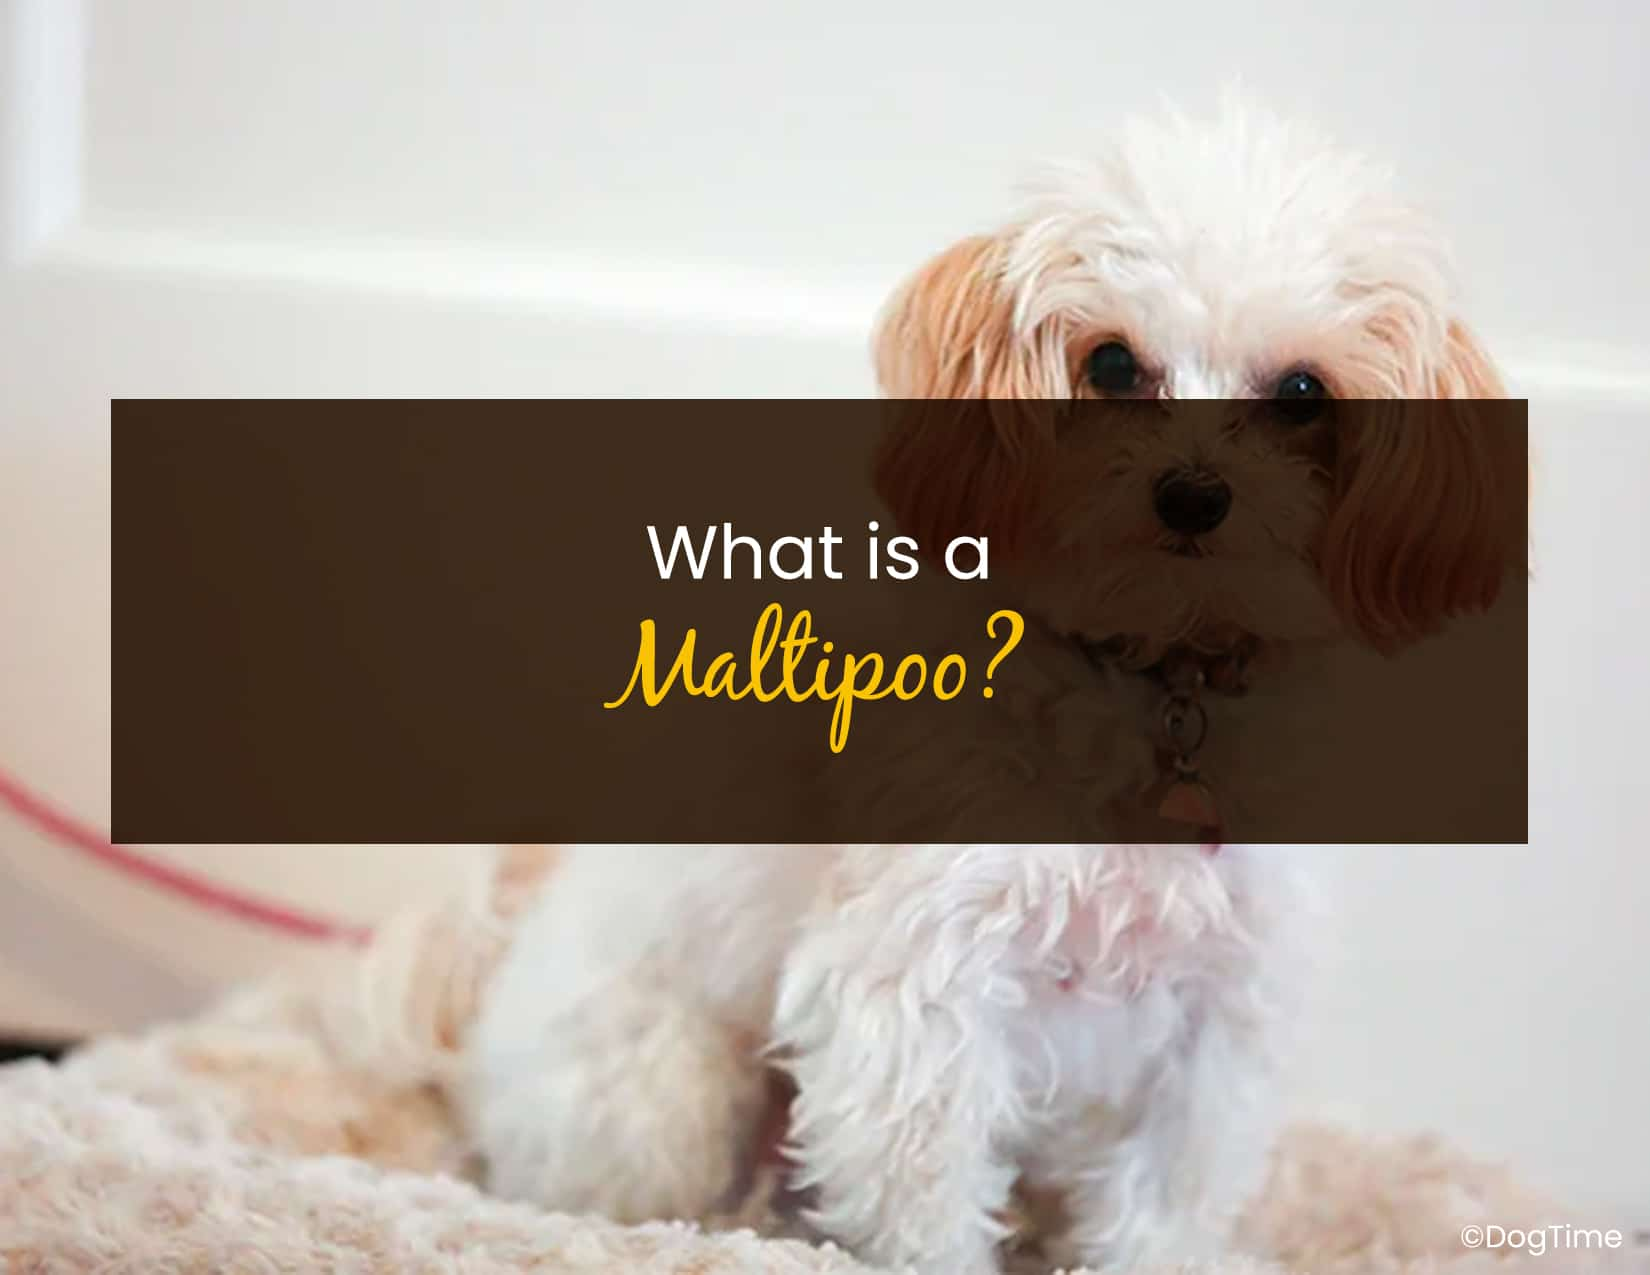 What is a Maltipoo